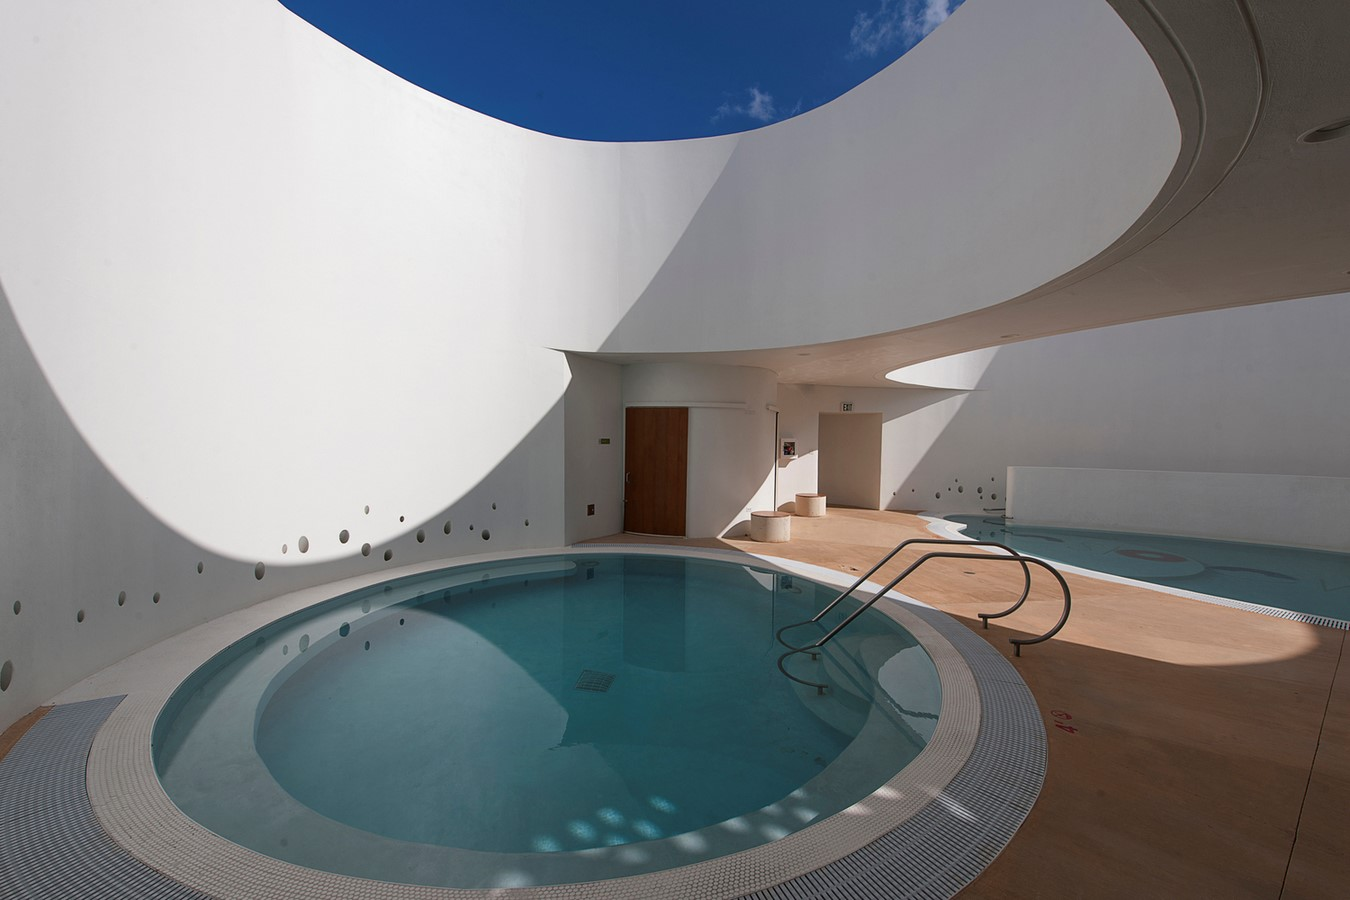 Therapeutic Pools For Esperanza School, by FUSTER + Architects - Sheet2